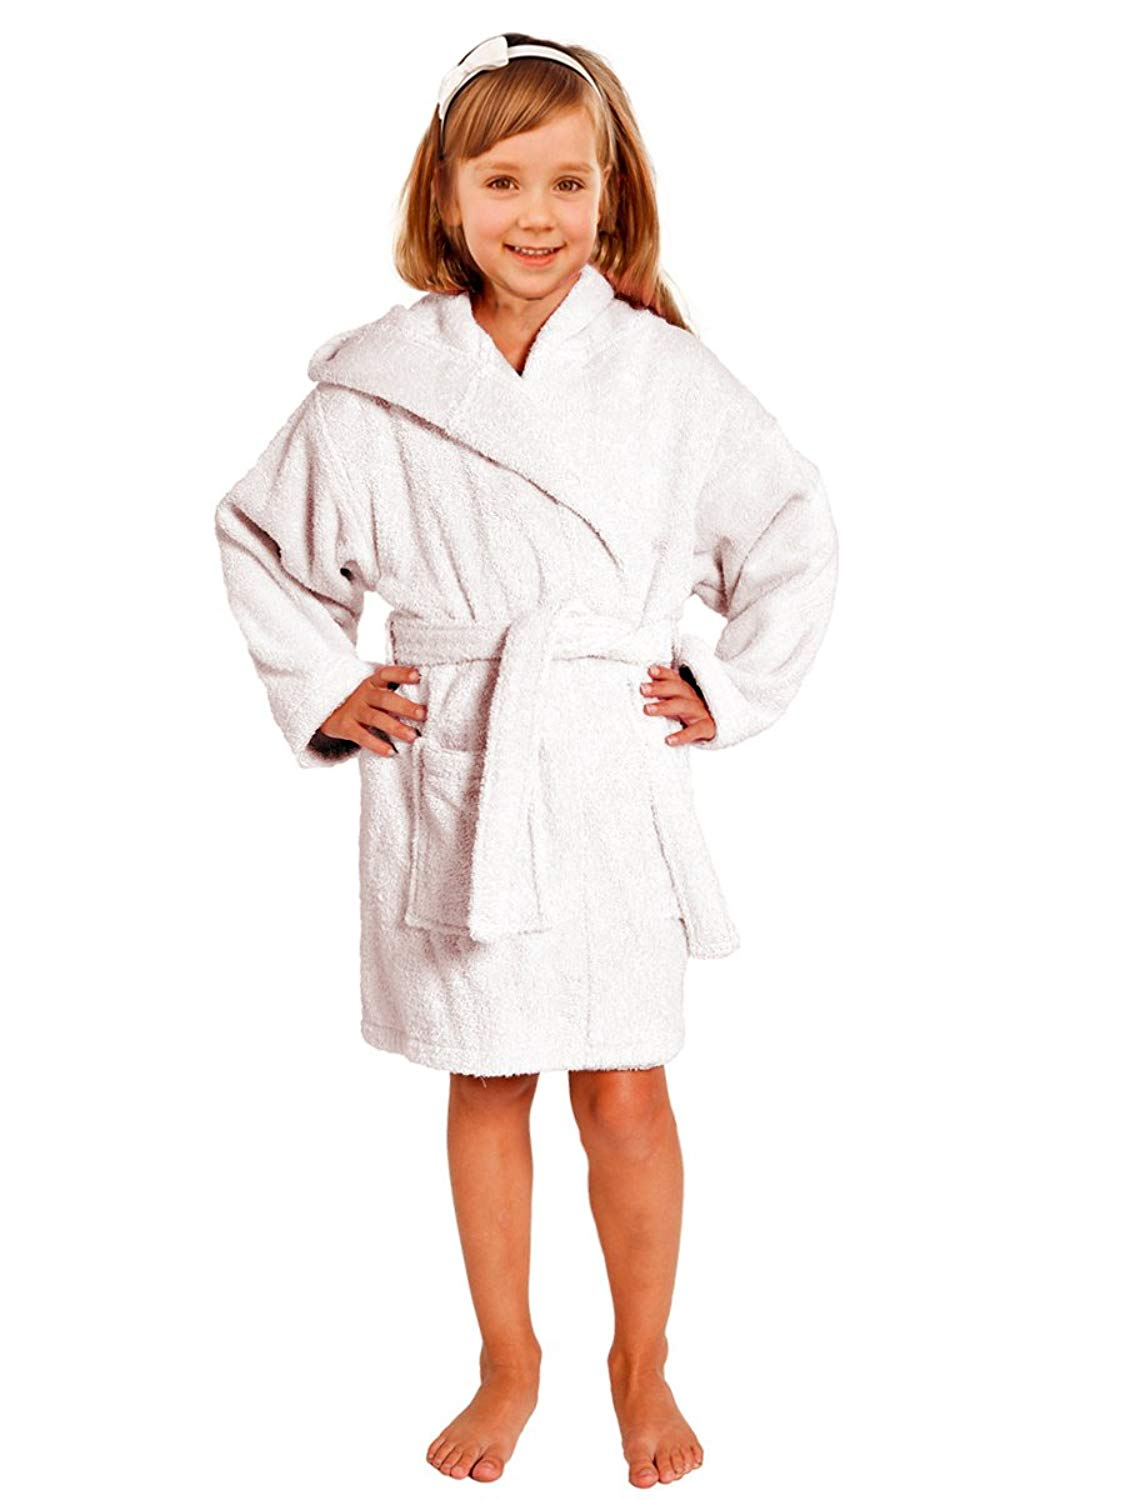 d0747b3002 Get Quotations · Terry Towel Bathrobe 100% Cotton White Kids Hooded Robe